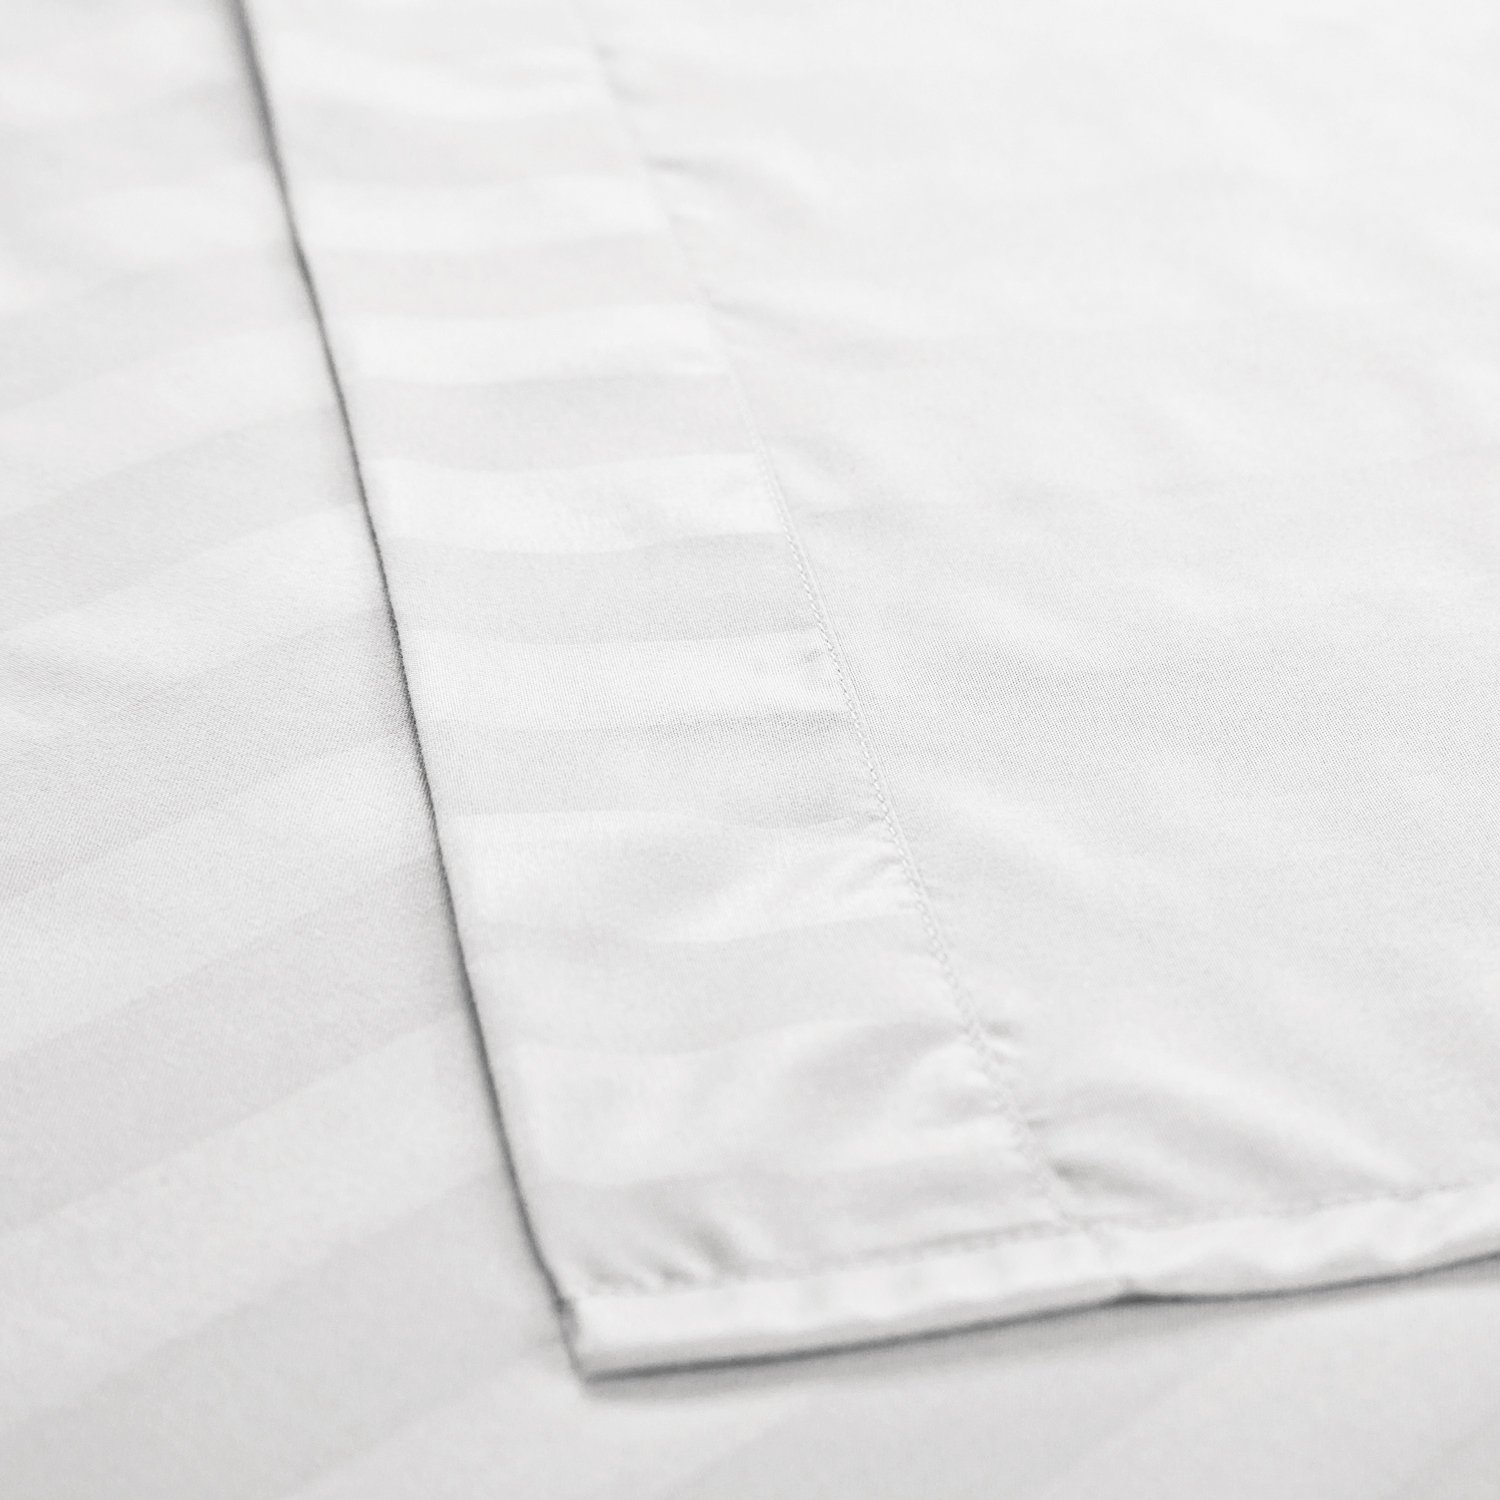 Striped Bedding Sheet Set King Plain White 4-Piece with Deep Pocket Fitted Sheet by Bedsure